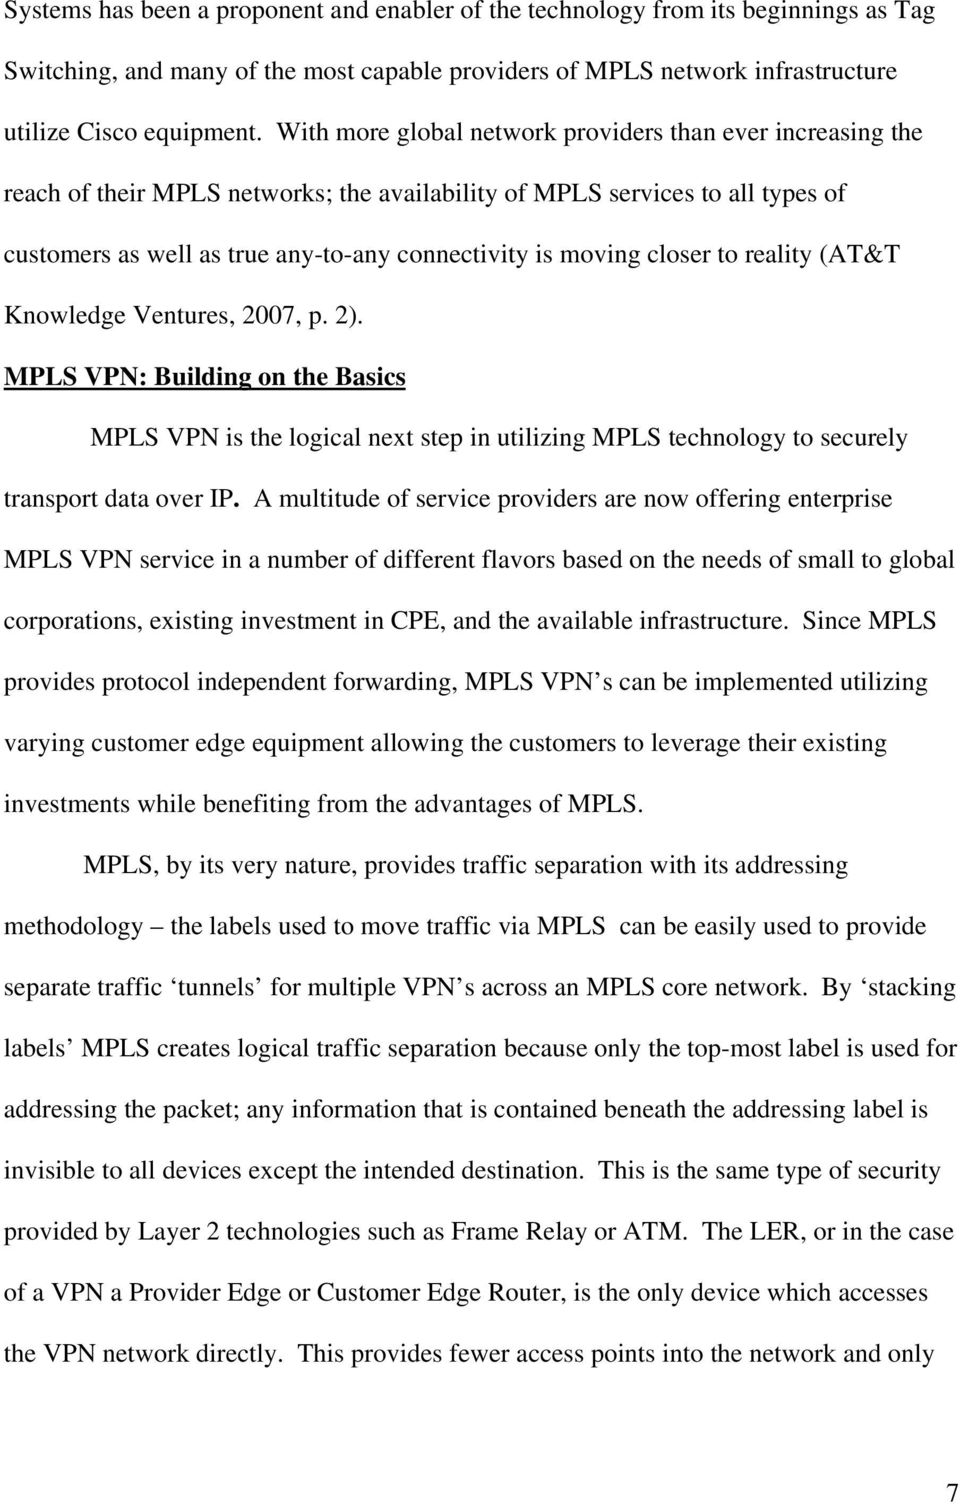 closer to reality (AT&T Knowledge Ventures, 2007, p. 2). MPLS VPN: Building on the Basics MPLS VPN is the logical next step in utilizing MPLS technology to securely transport data over IP.